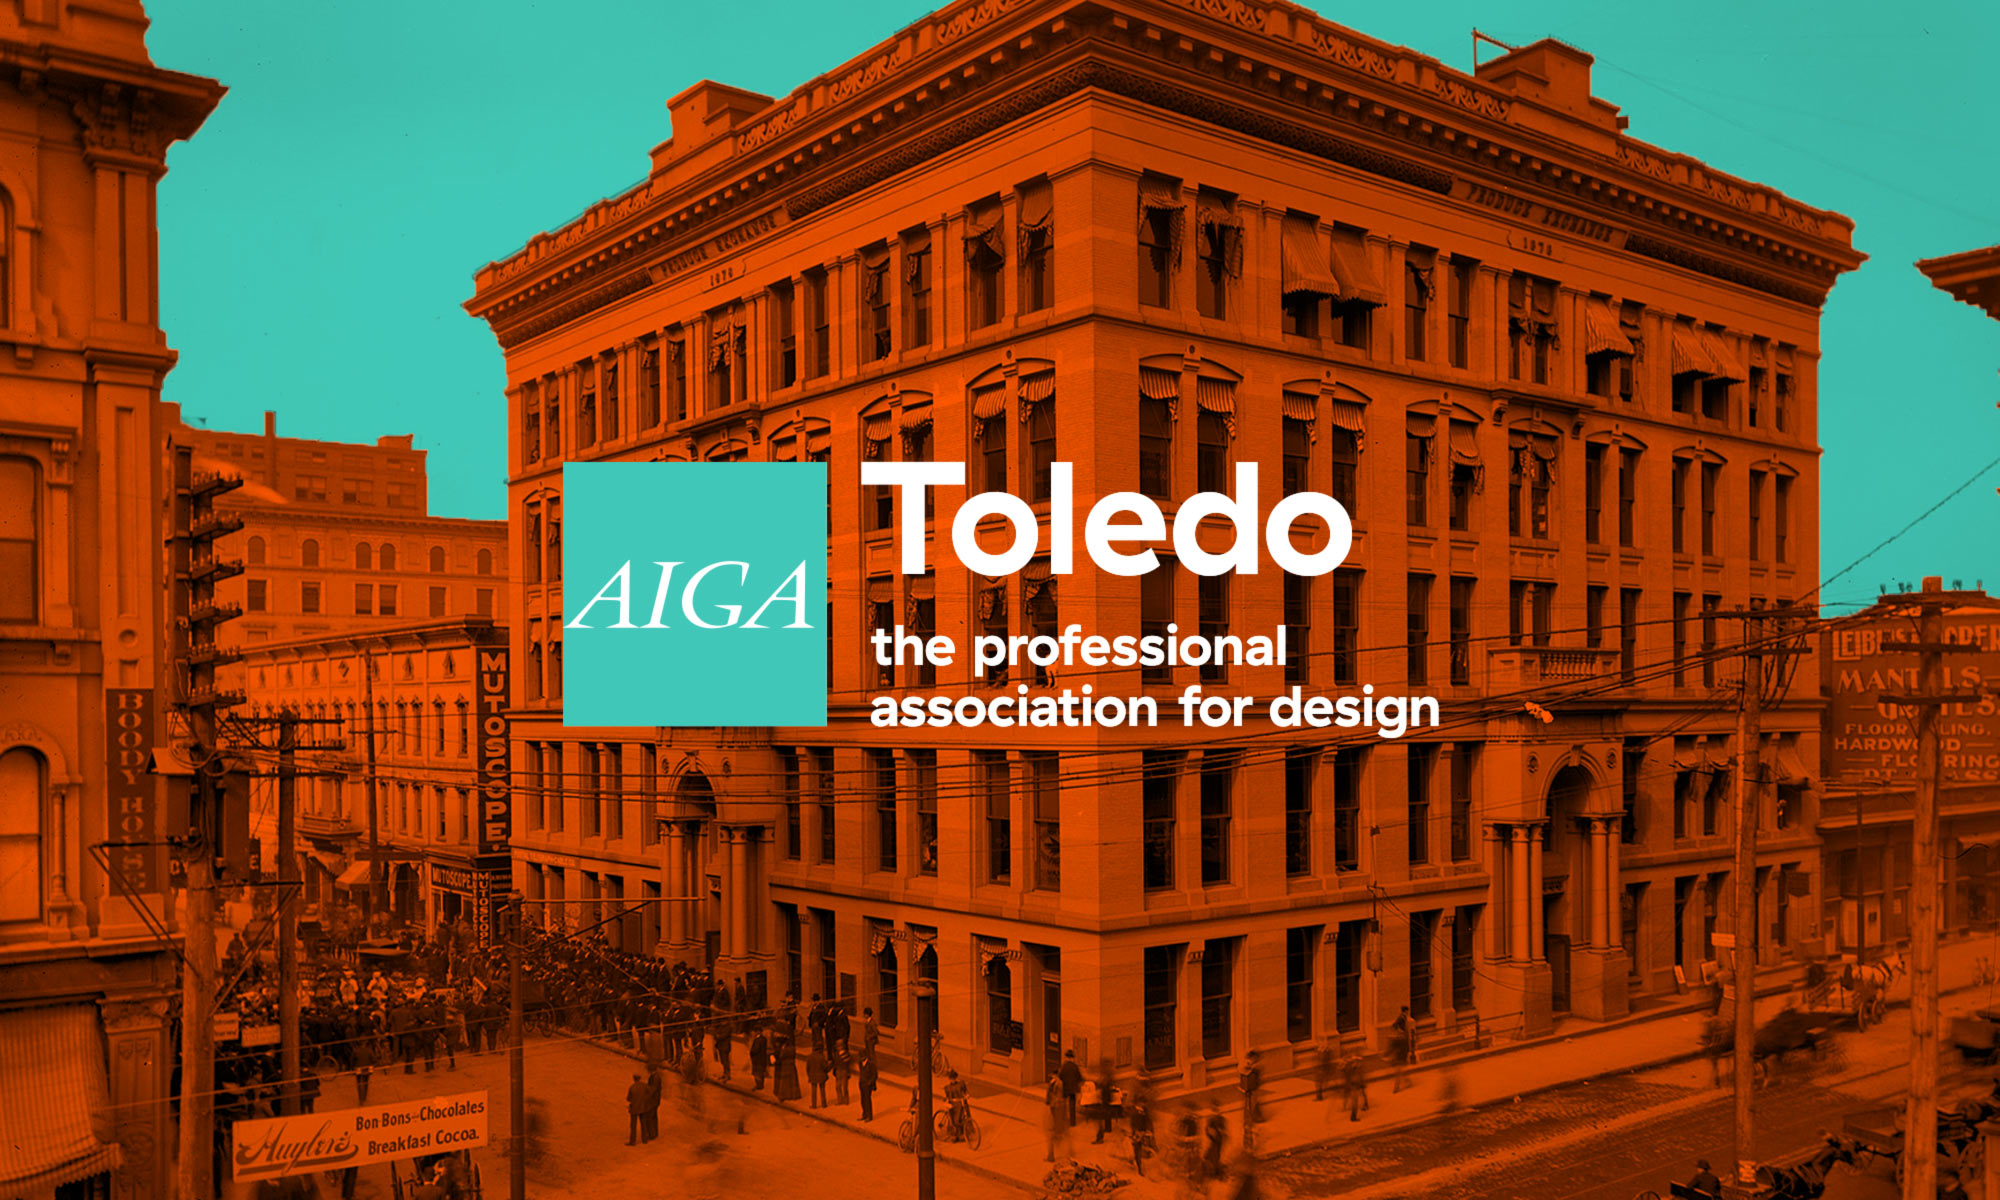 aiga toledo the professional association for design news image